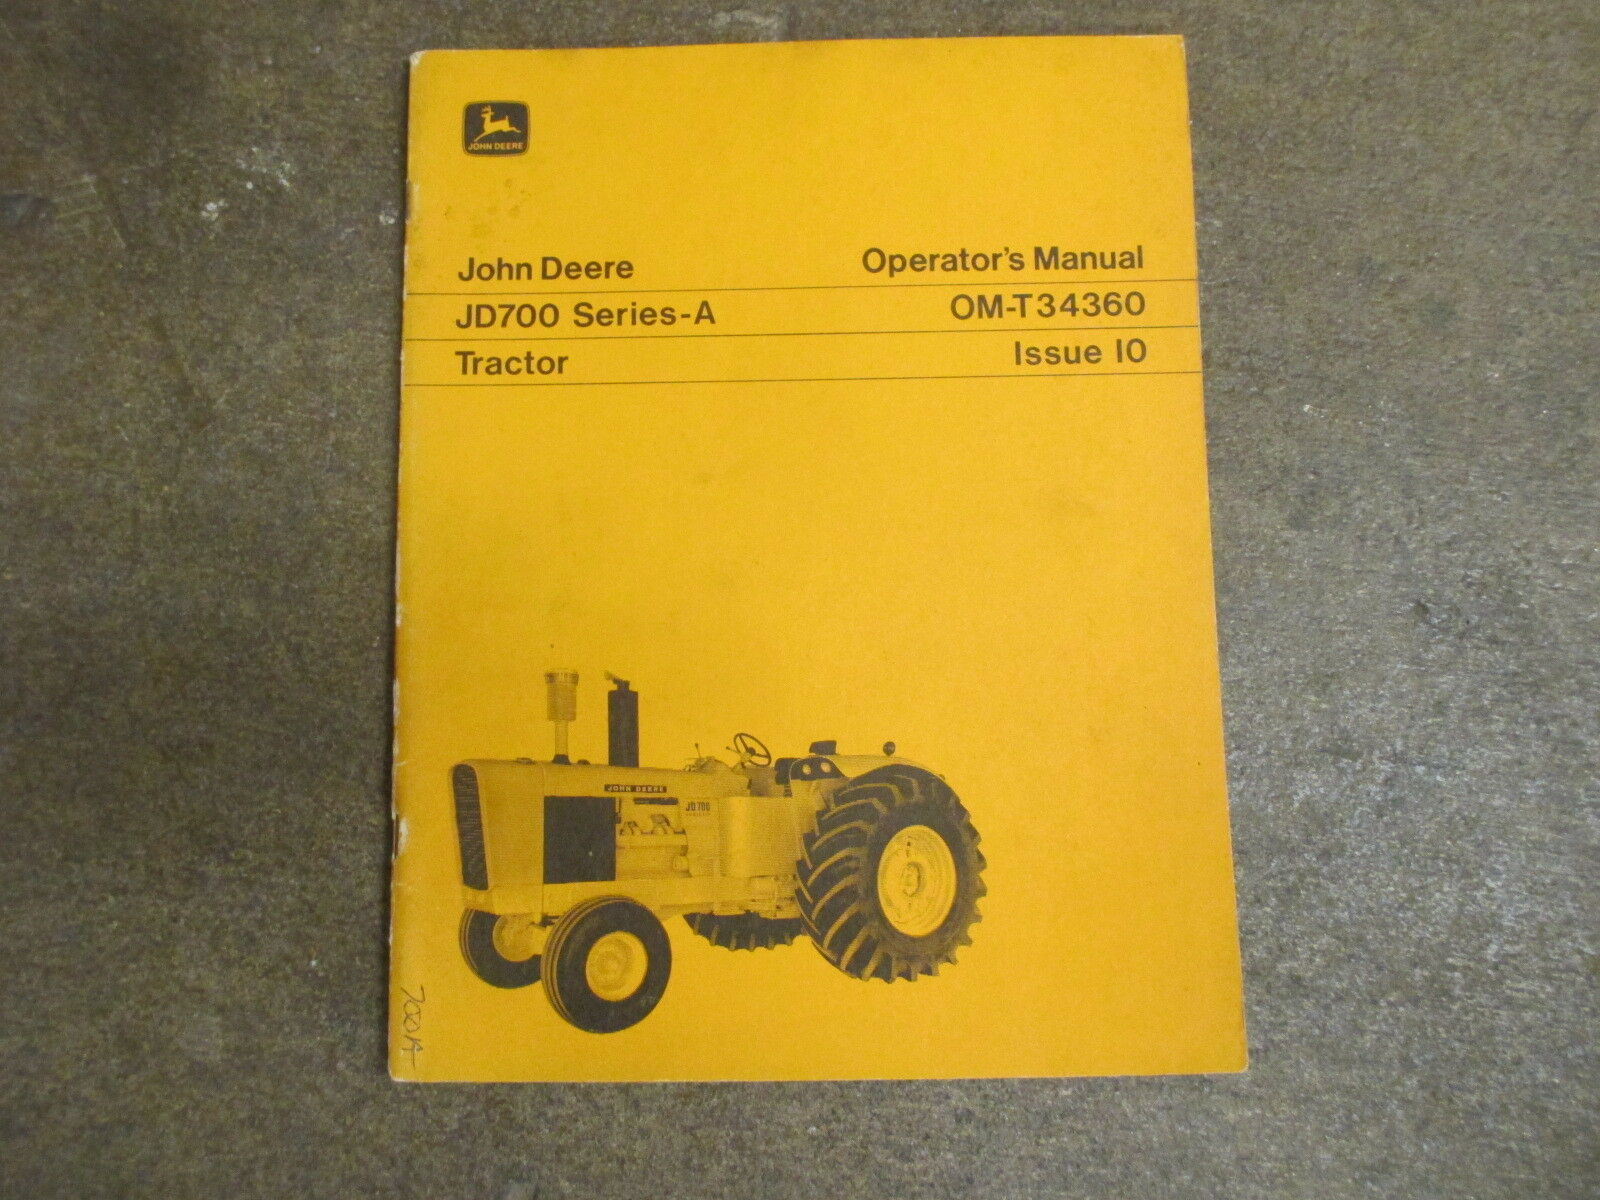 John Deere 700 series A JD700 tractor owners & maintenance manual 1 of  1Only 1 available ...